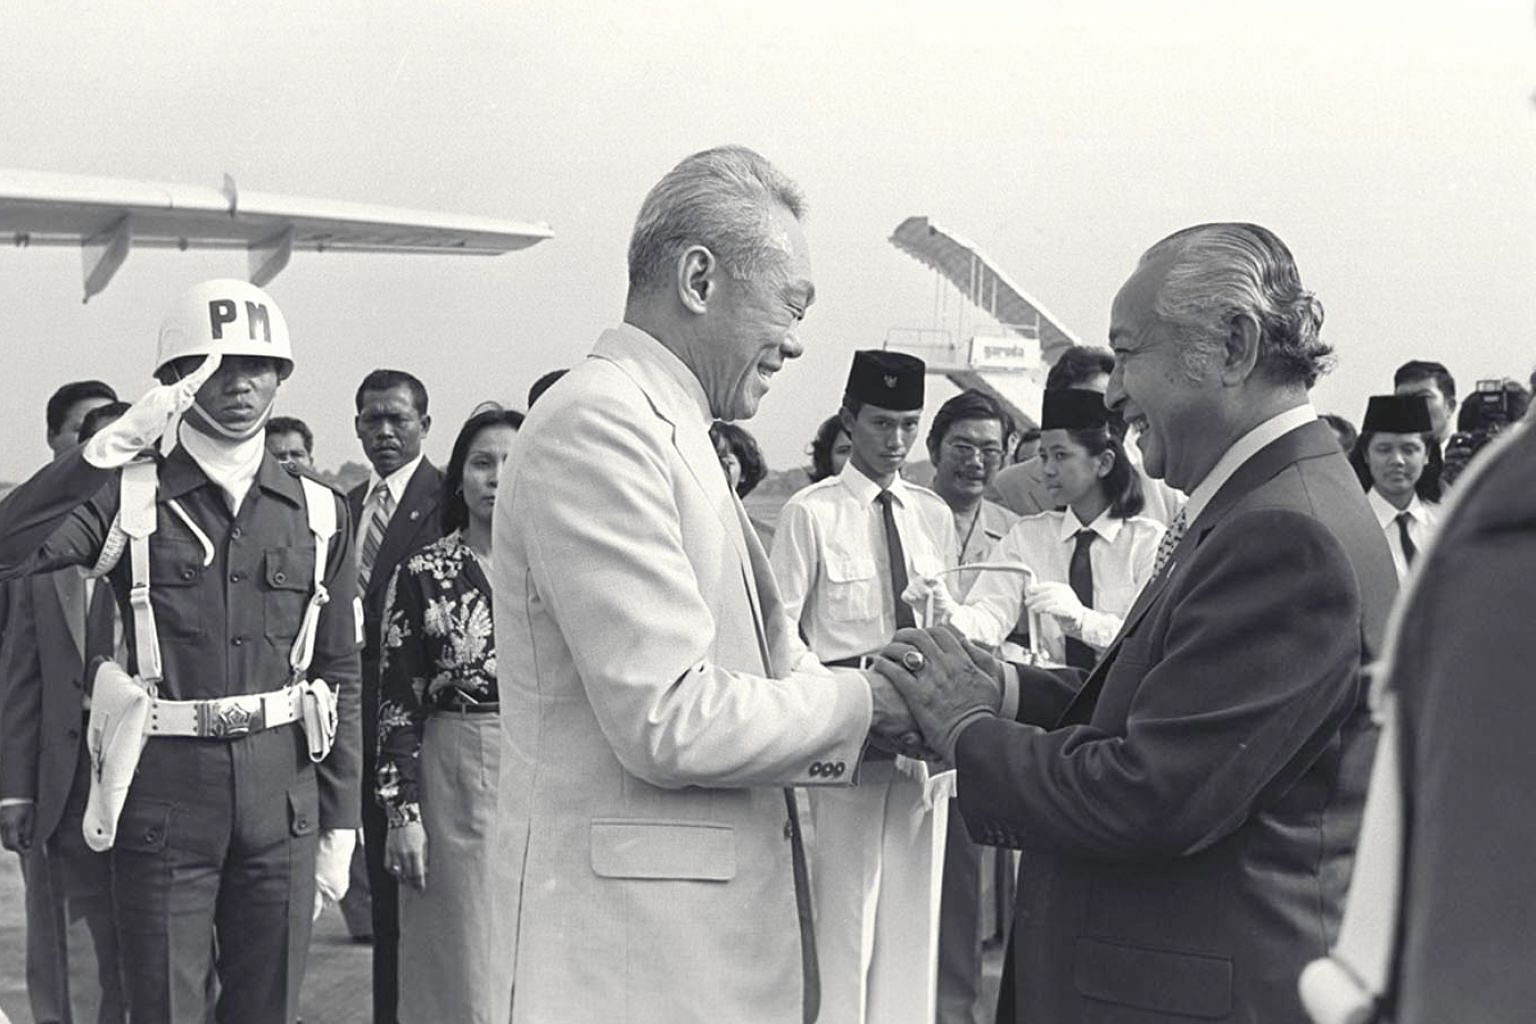 "When Mr Lee Kuan Yew was Prime Minister of Singapore, he built a strong friendship with Indonesian President Suharto that ""overcame the many prejudices between Singaporeans of Chinese descent and Indonesians"". According to Mr Lee's memoirs, they met"